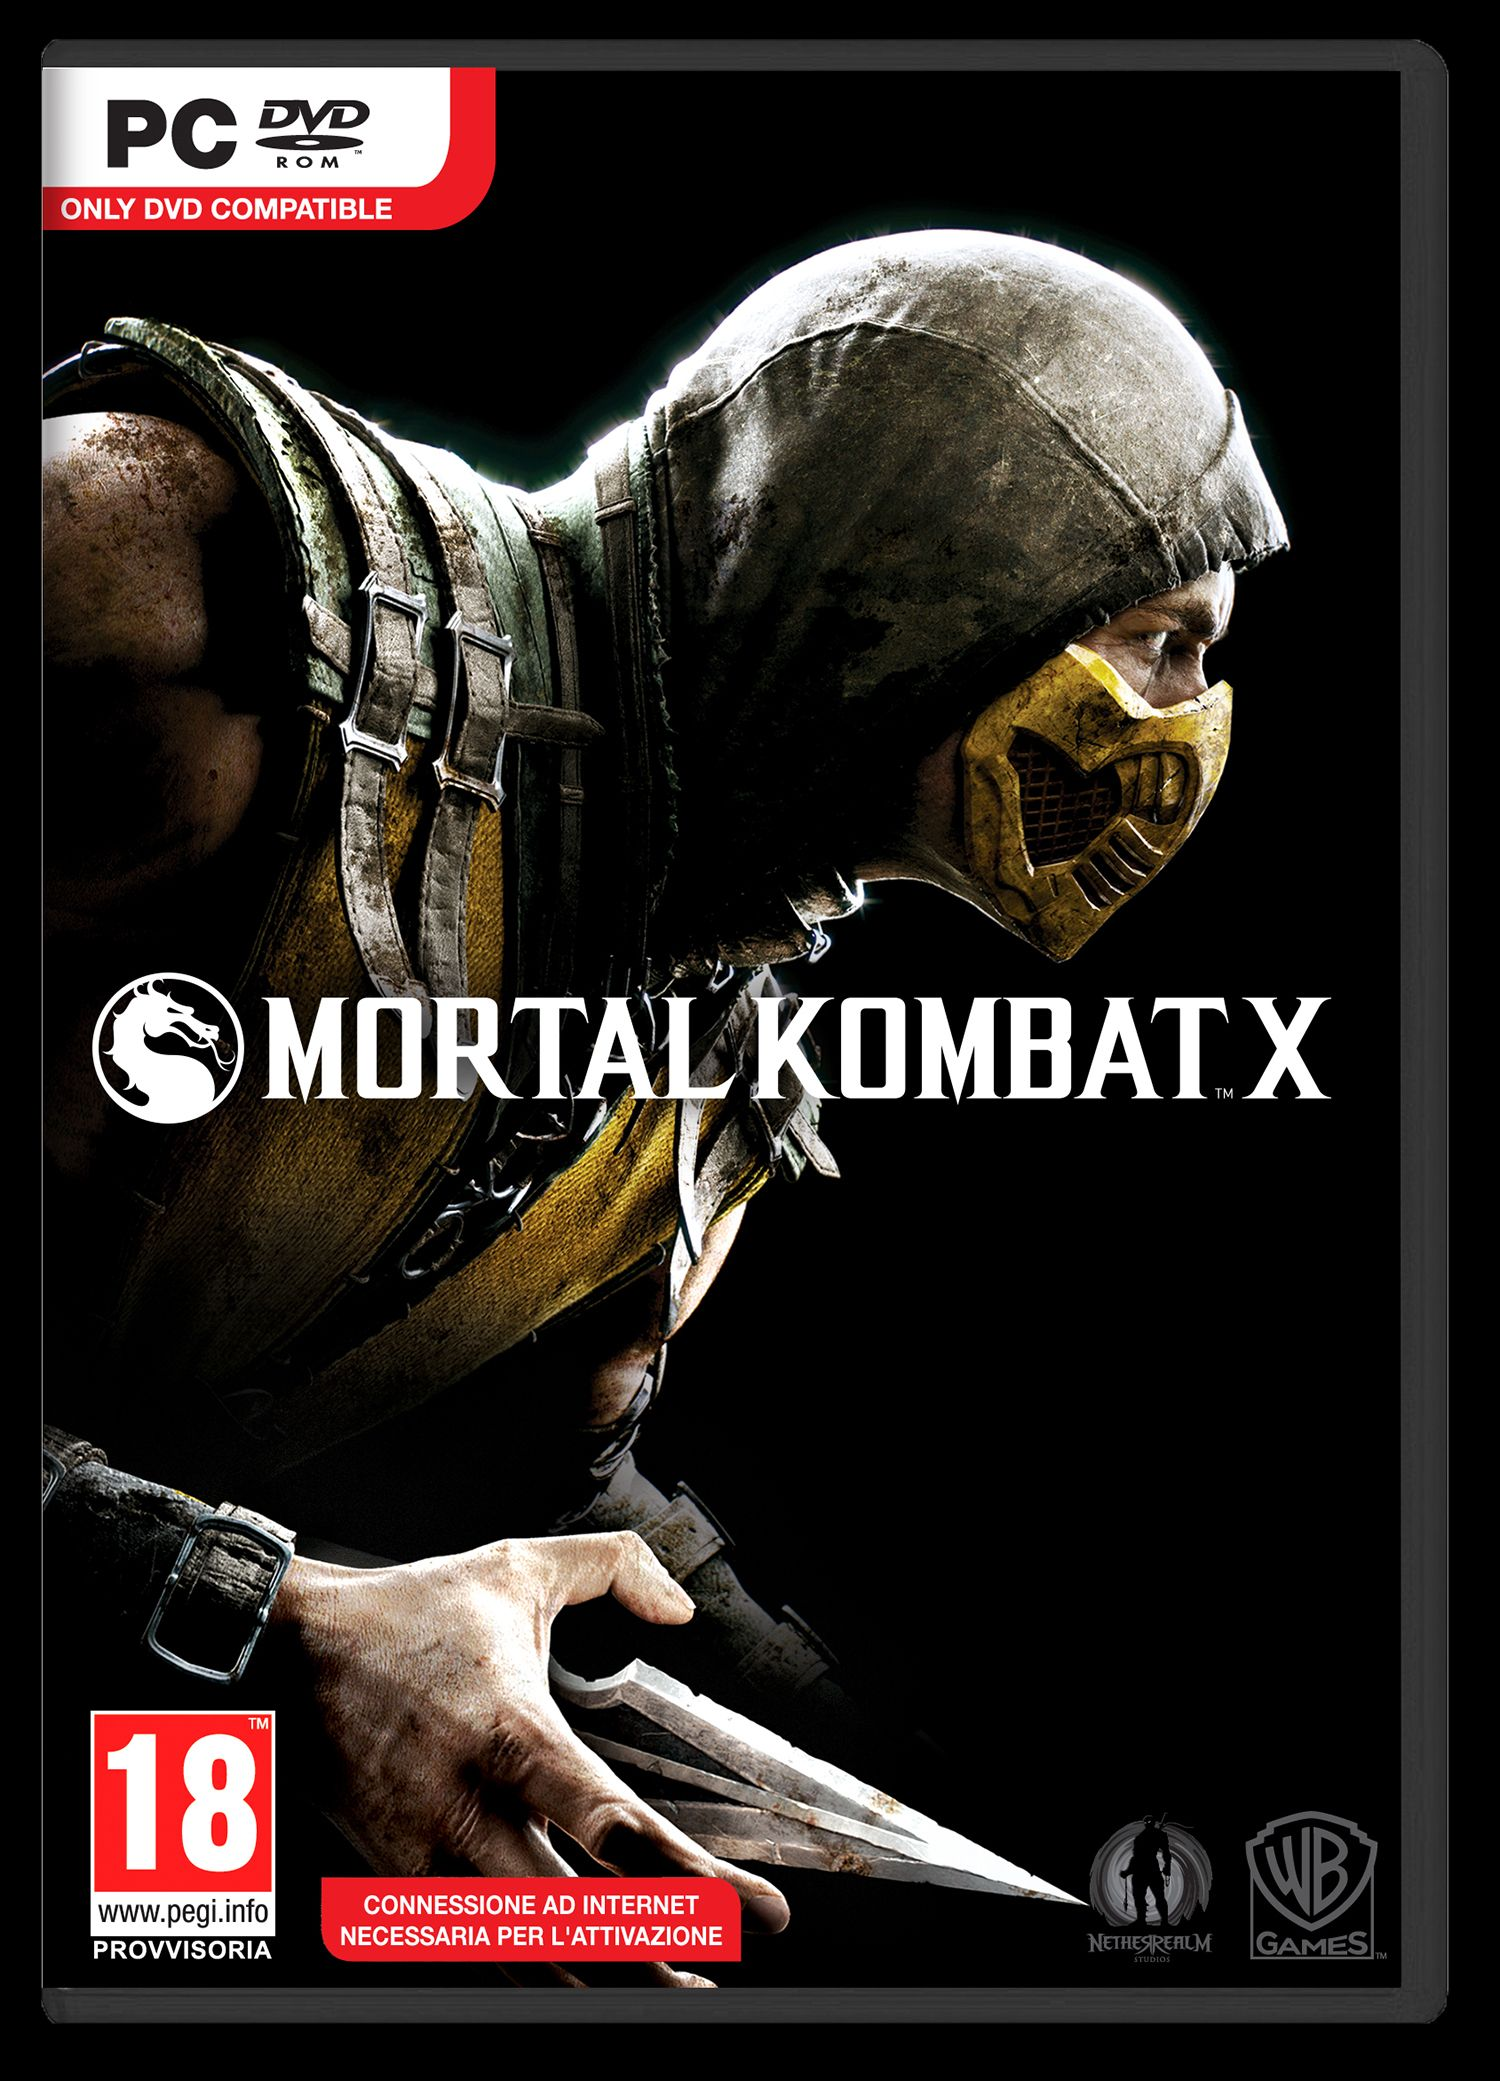 The Box Cover For Mortal Kombat X Is Revealed And The Game Is Now